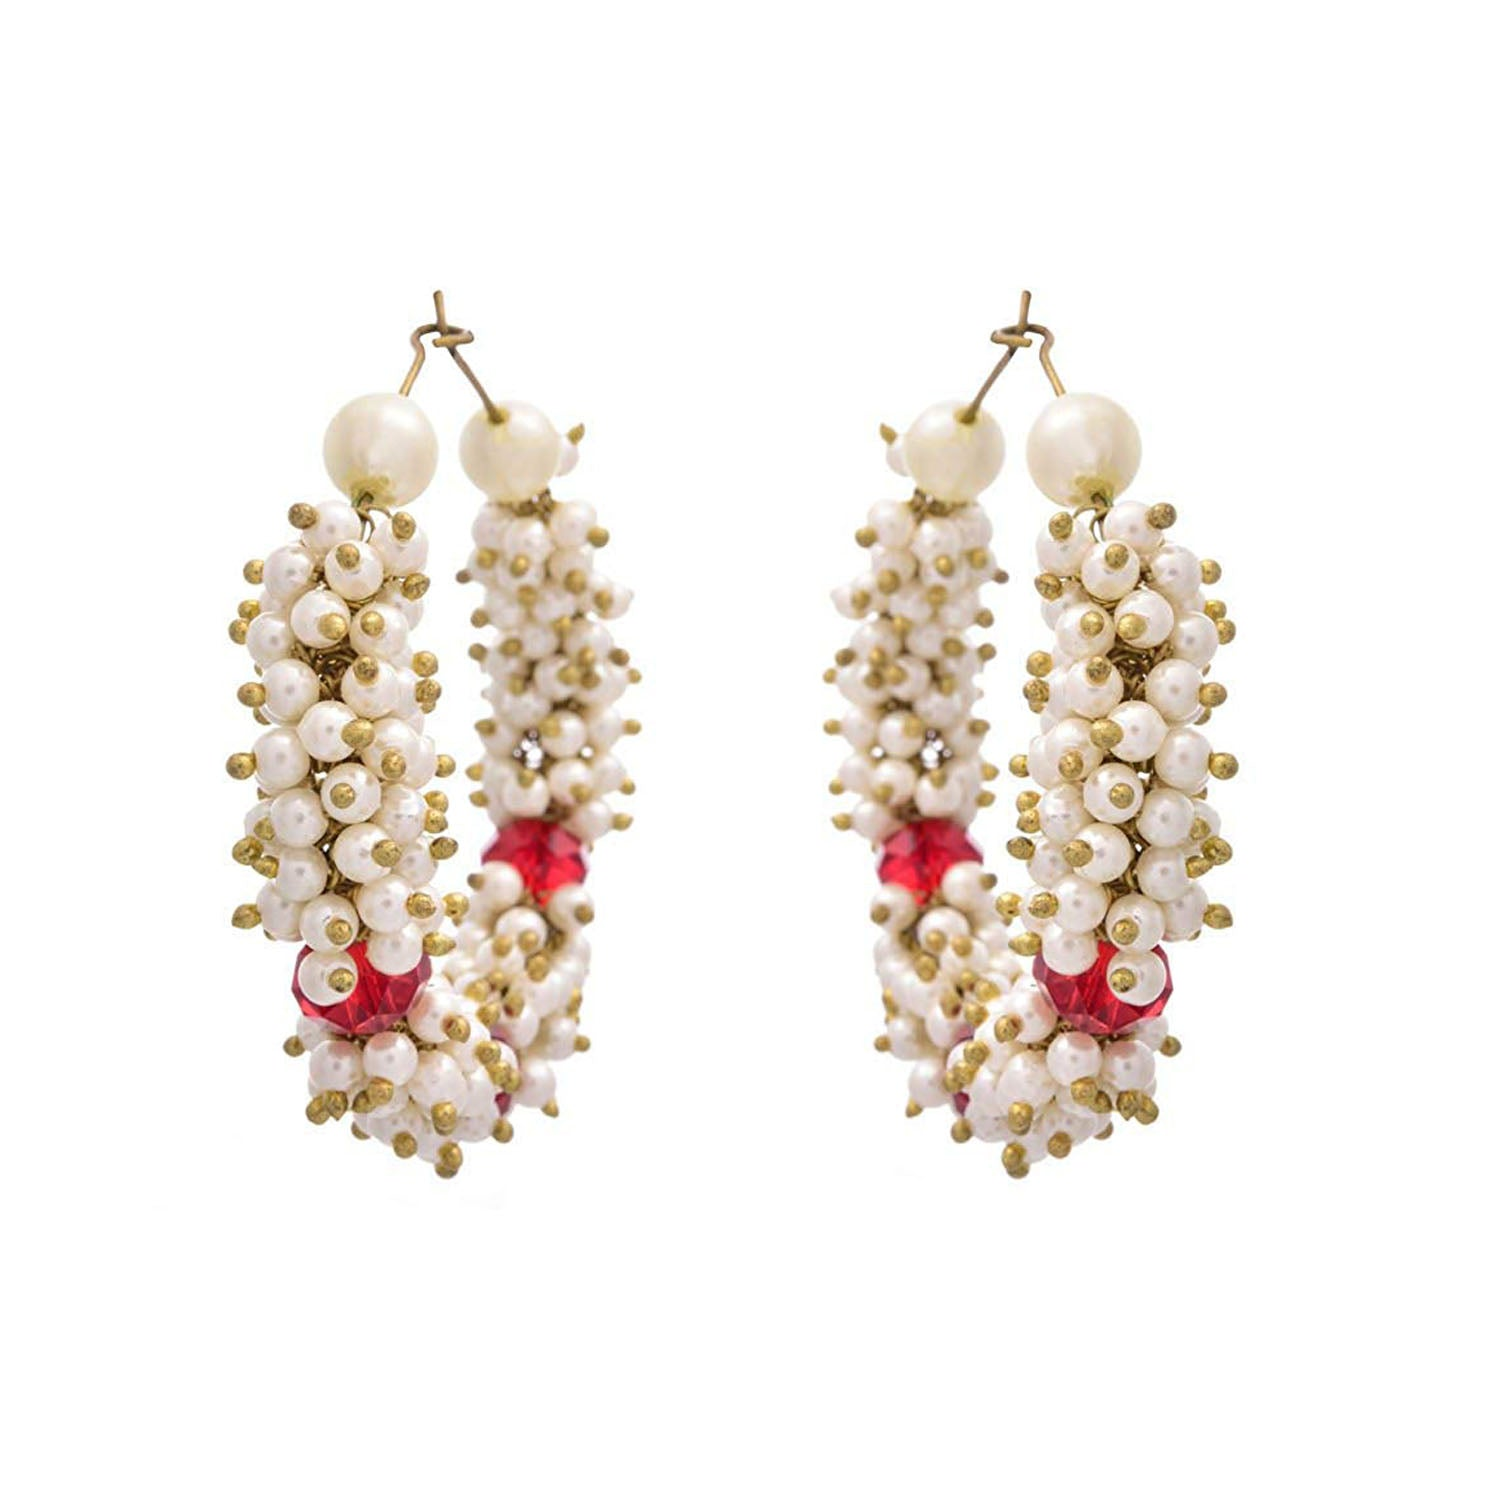 Jfl - Pretty Pearl Balis With Red Crystal.